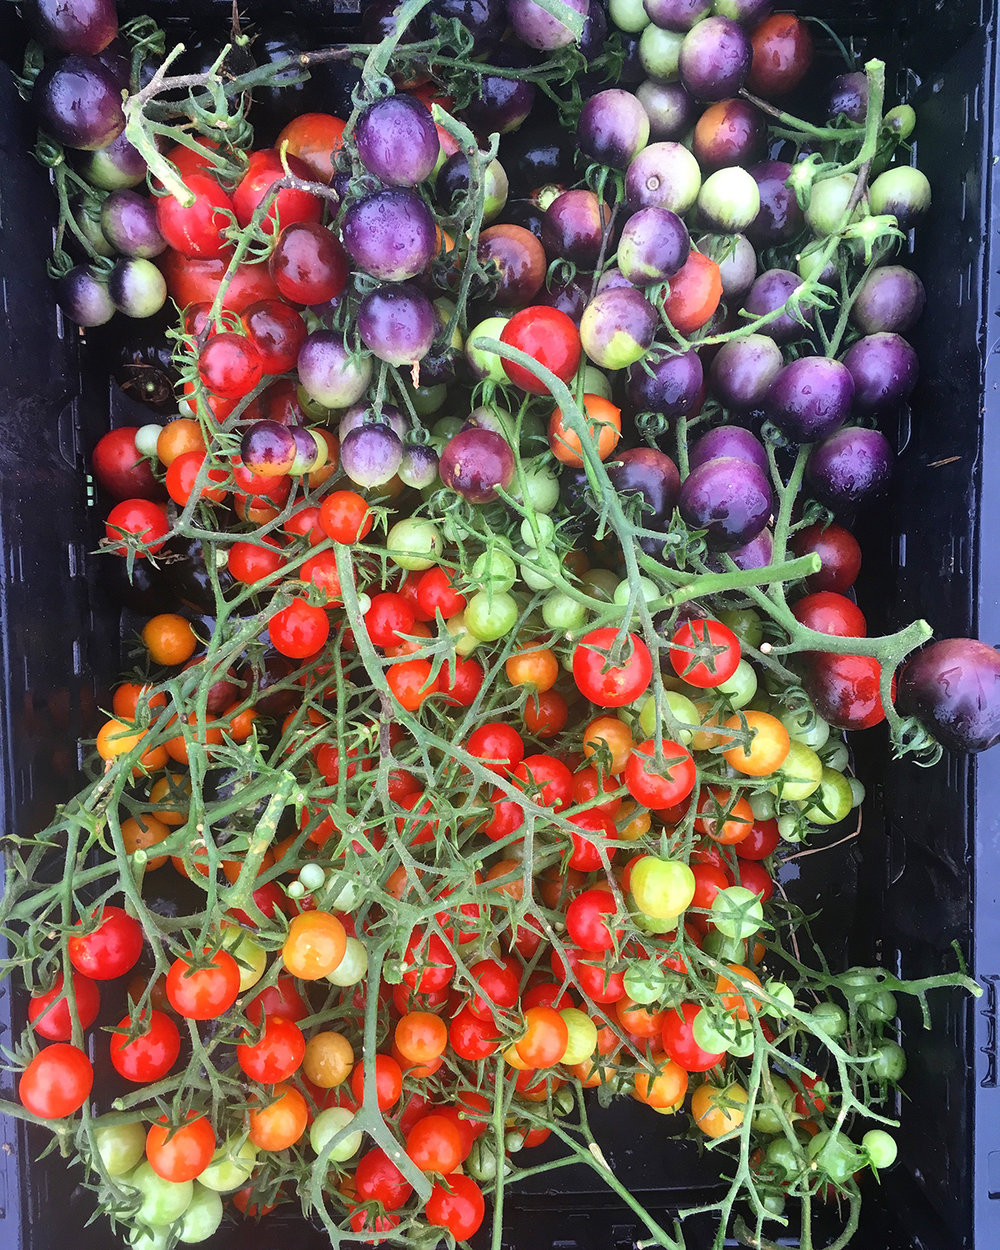 Tomatoes 'Supersweet 100', 'Sungold', and 'Indigo Cherry Drops'.